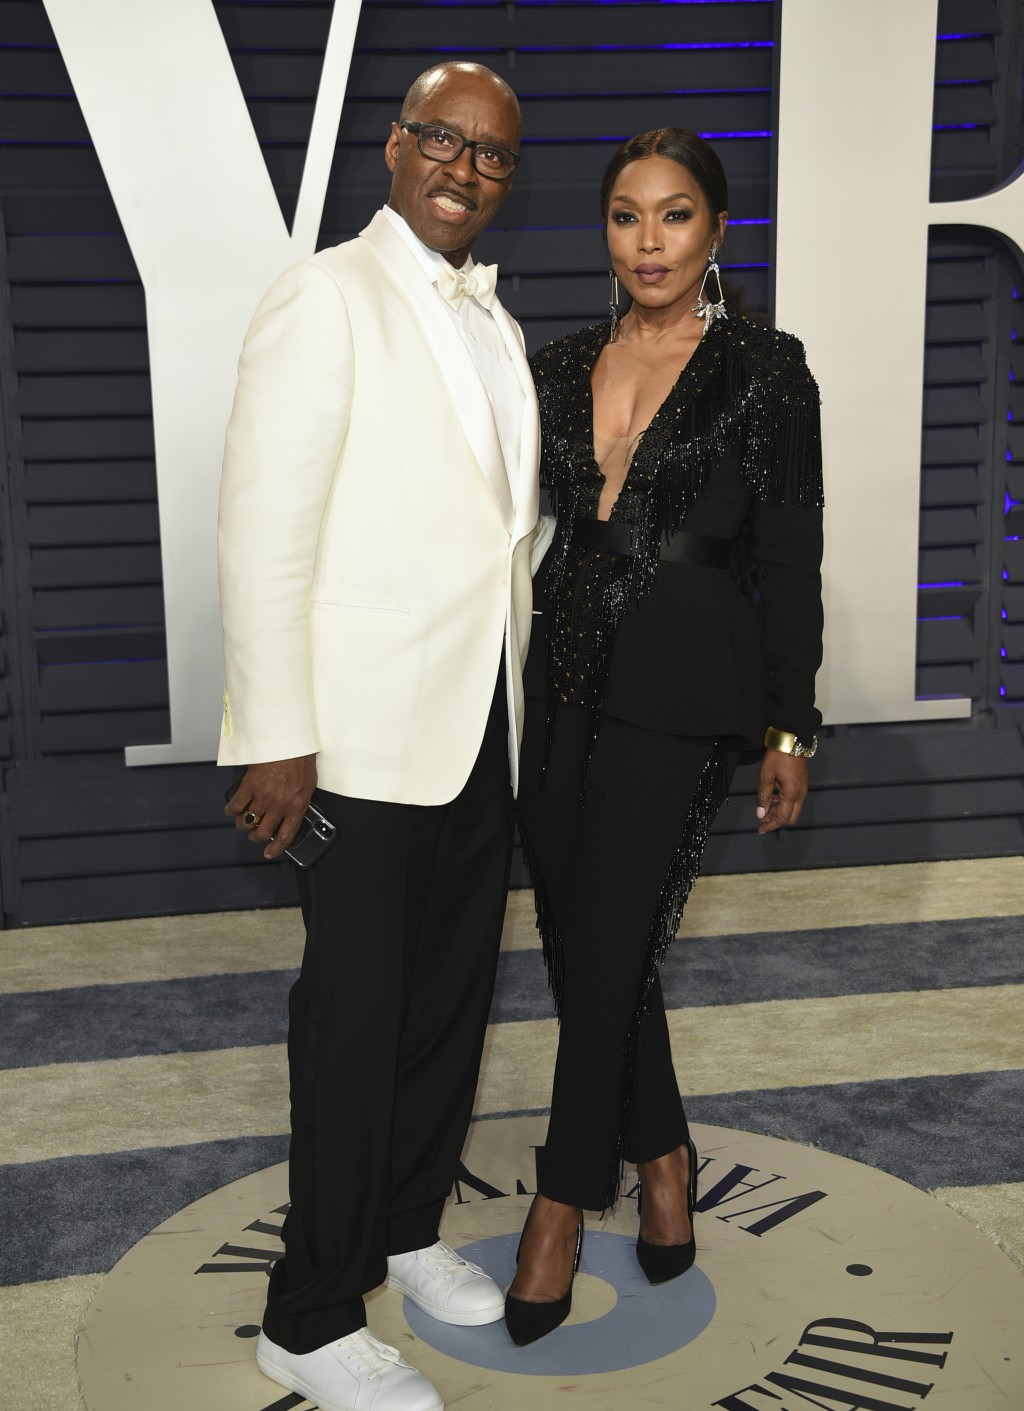 Courtney B. Vance, left, and Angela Bassett arrive at the Vanity Fair Oscar Party on Sunday, Feb. 24, 2019, in Beverly Hills, Calif. (Photo by Evan Ag